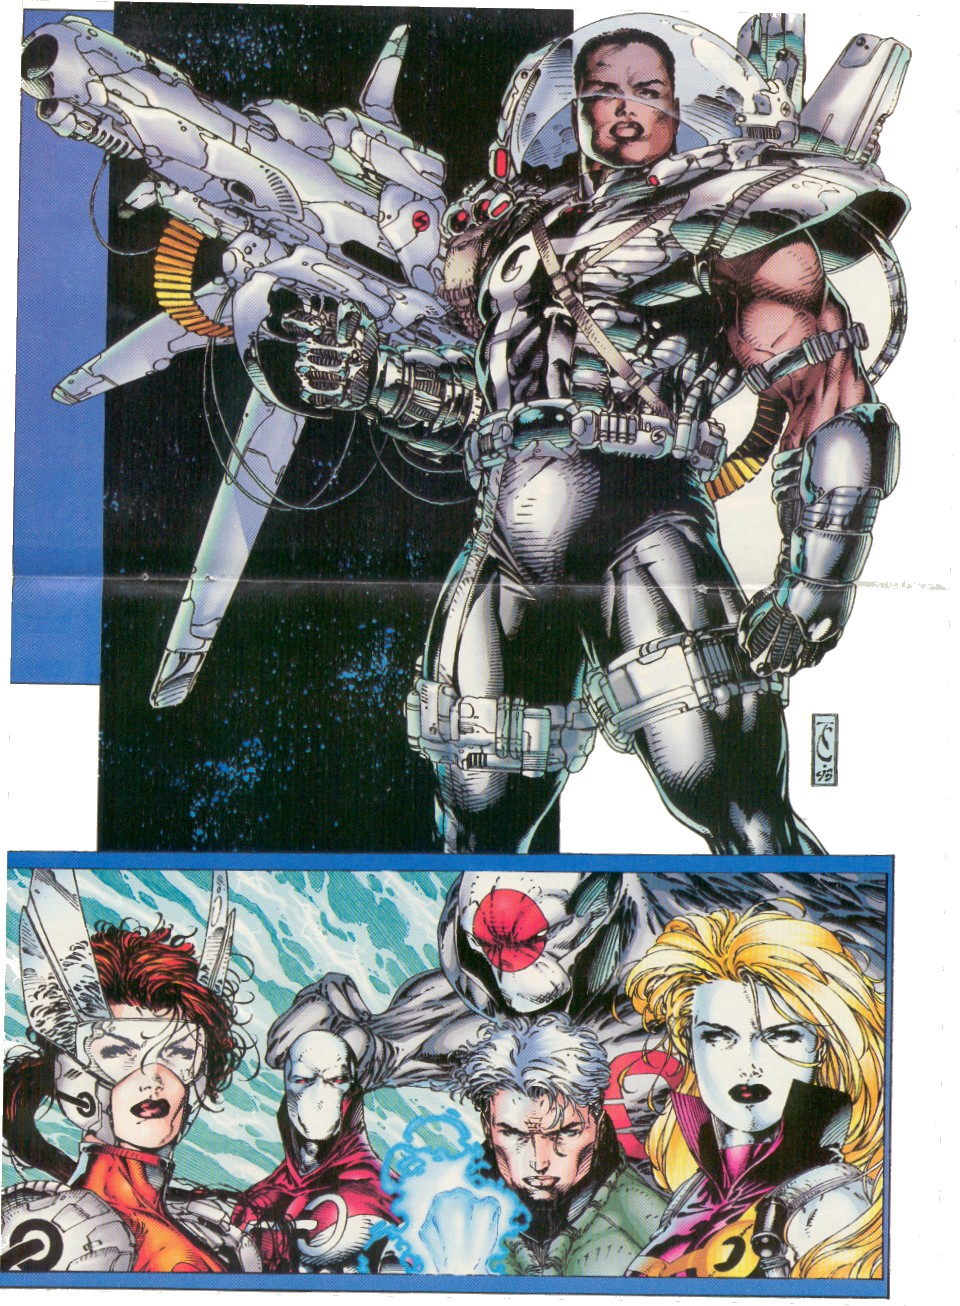 Pin-up from Stormwatch Vol1 #6